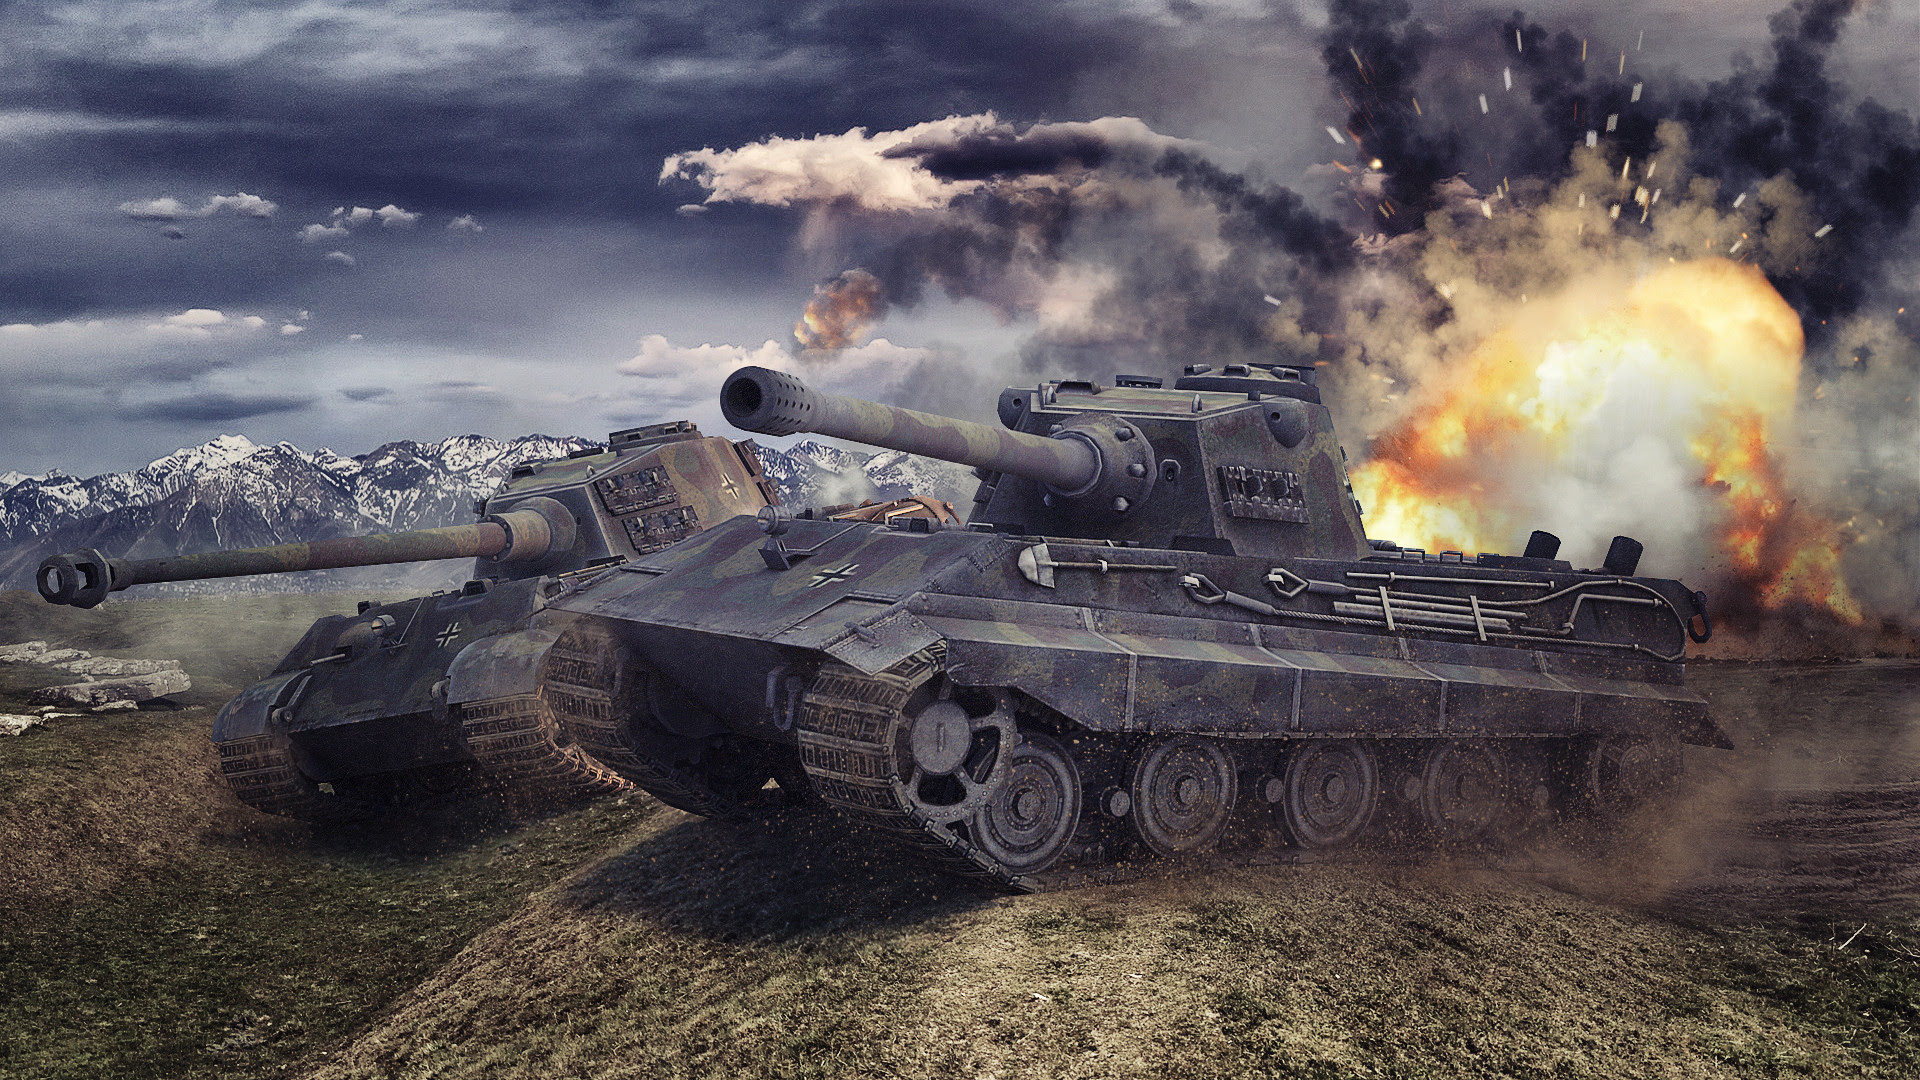 Army Tank Wallpaper Hd 63 Images